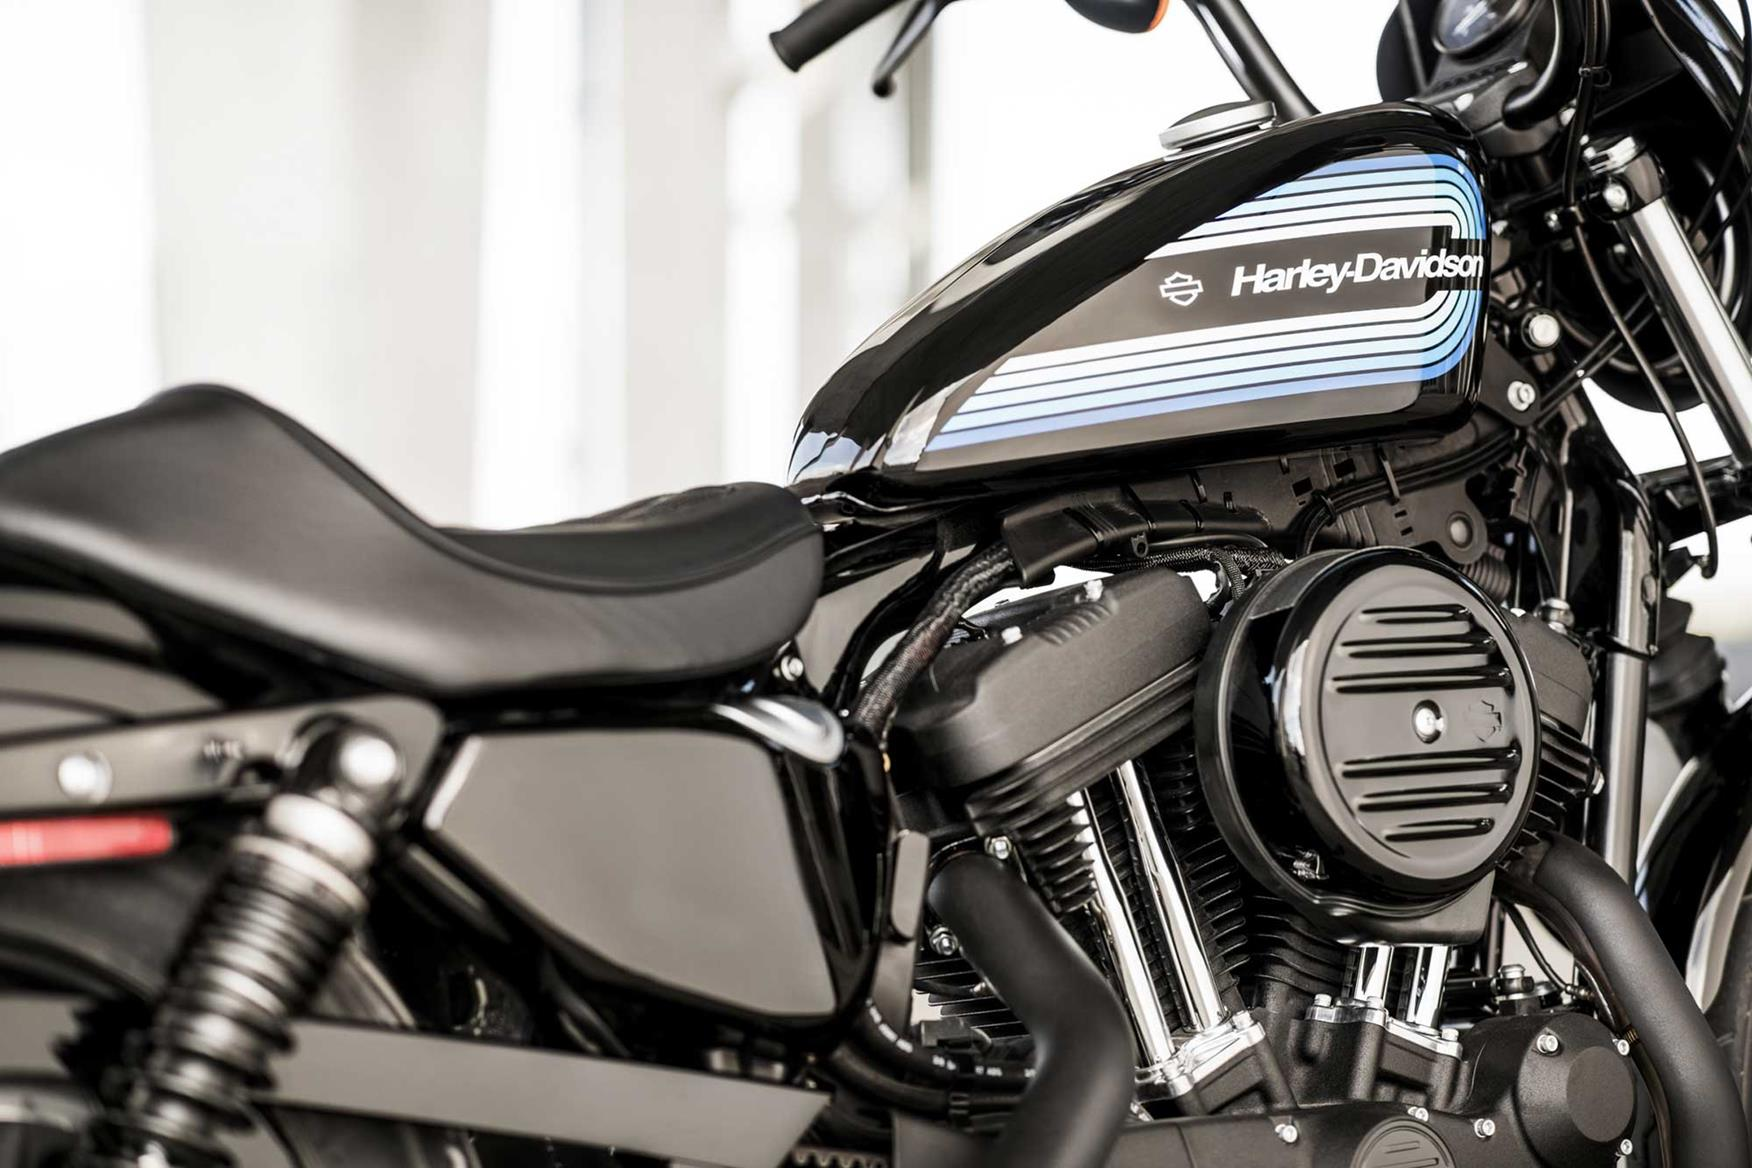 Harley-Davidson Iron 1200 review: 'the Sportster we've been